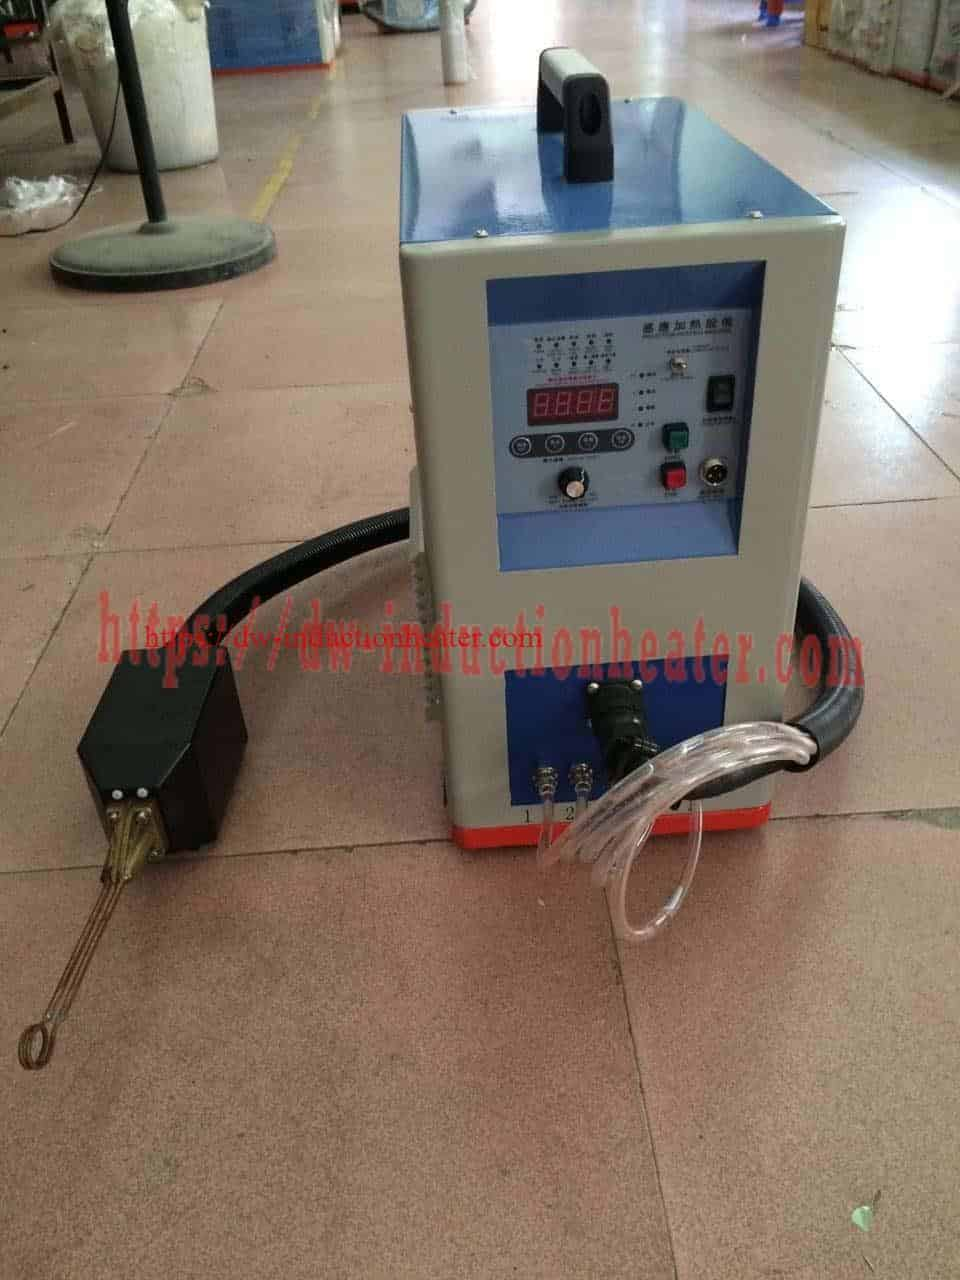 Induction Heating Technologiesinduction Process Articles Circuit Simple Dw Uhf 6kw Iii Handheld Heater 2 Turn Helical Coil